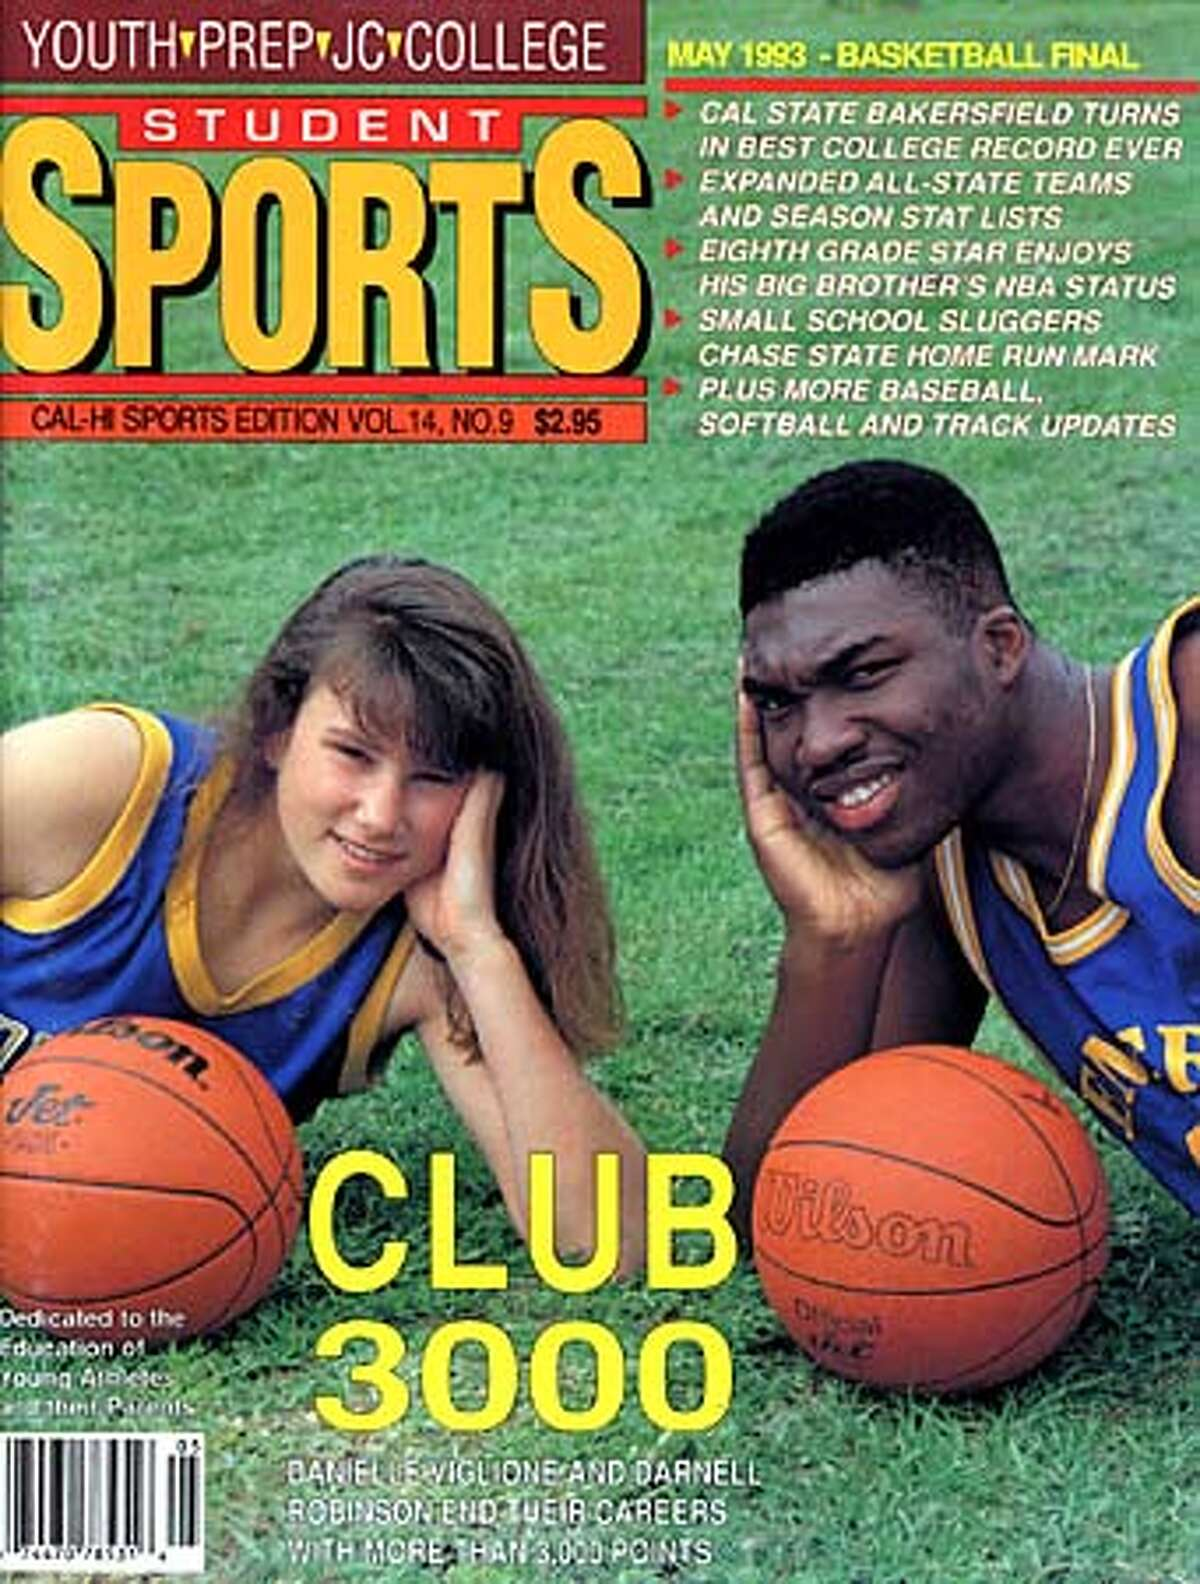 Robinson scored 3,359 points during his career at Emery High School, a feat that put him on the cover of magazines and made him a highly sought-after college recruit. Photo courtesy of Student Sports Magazine